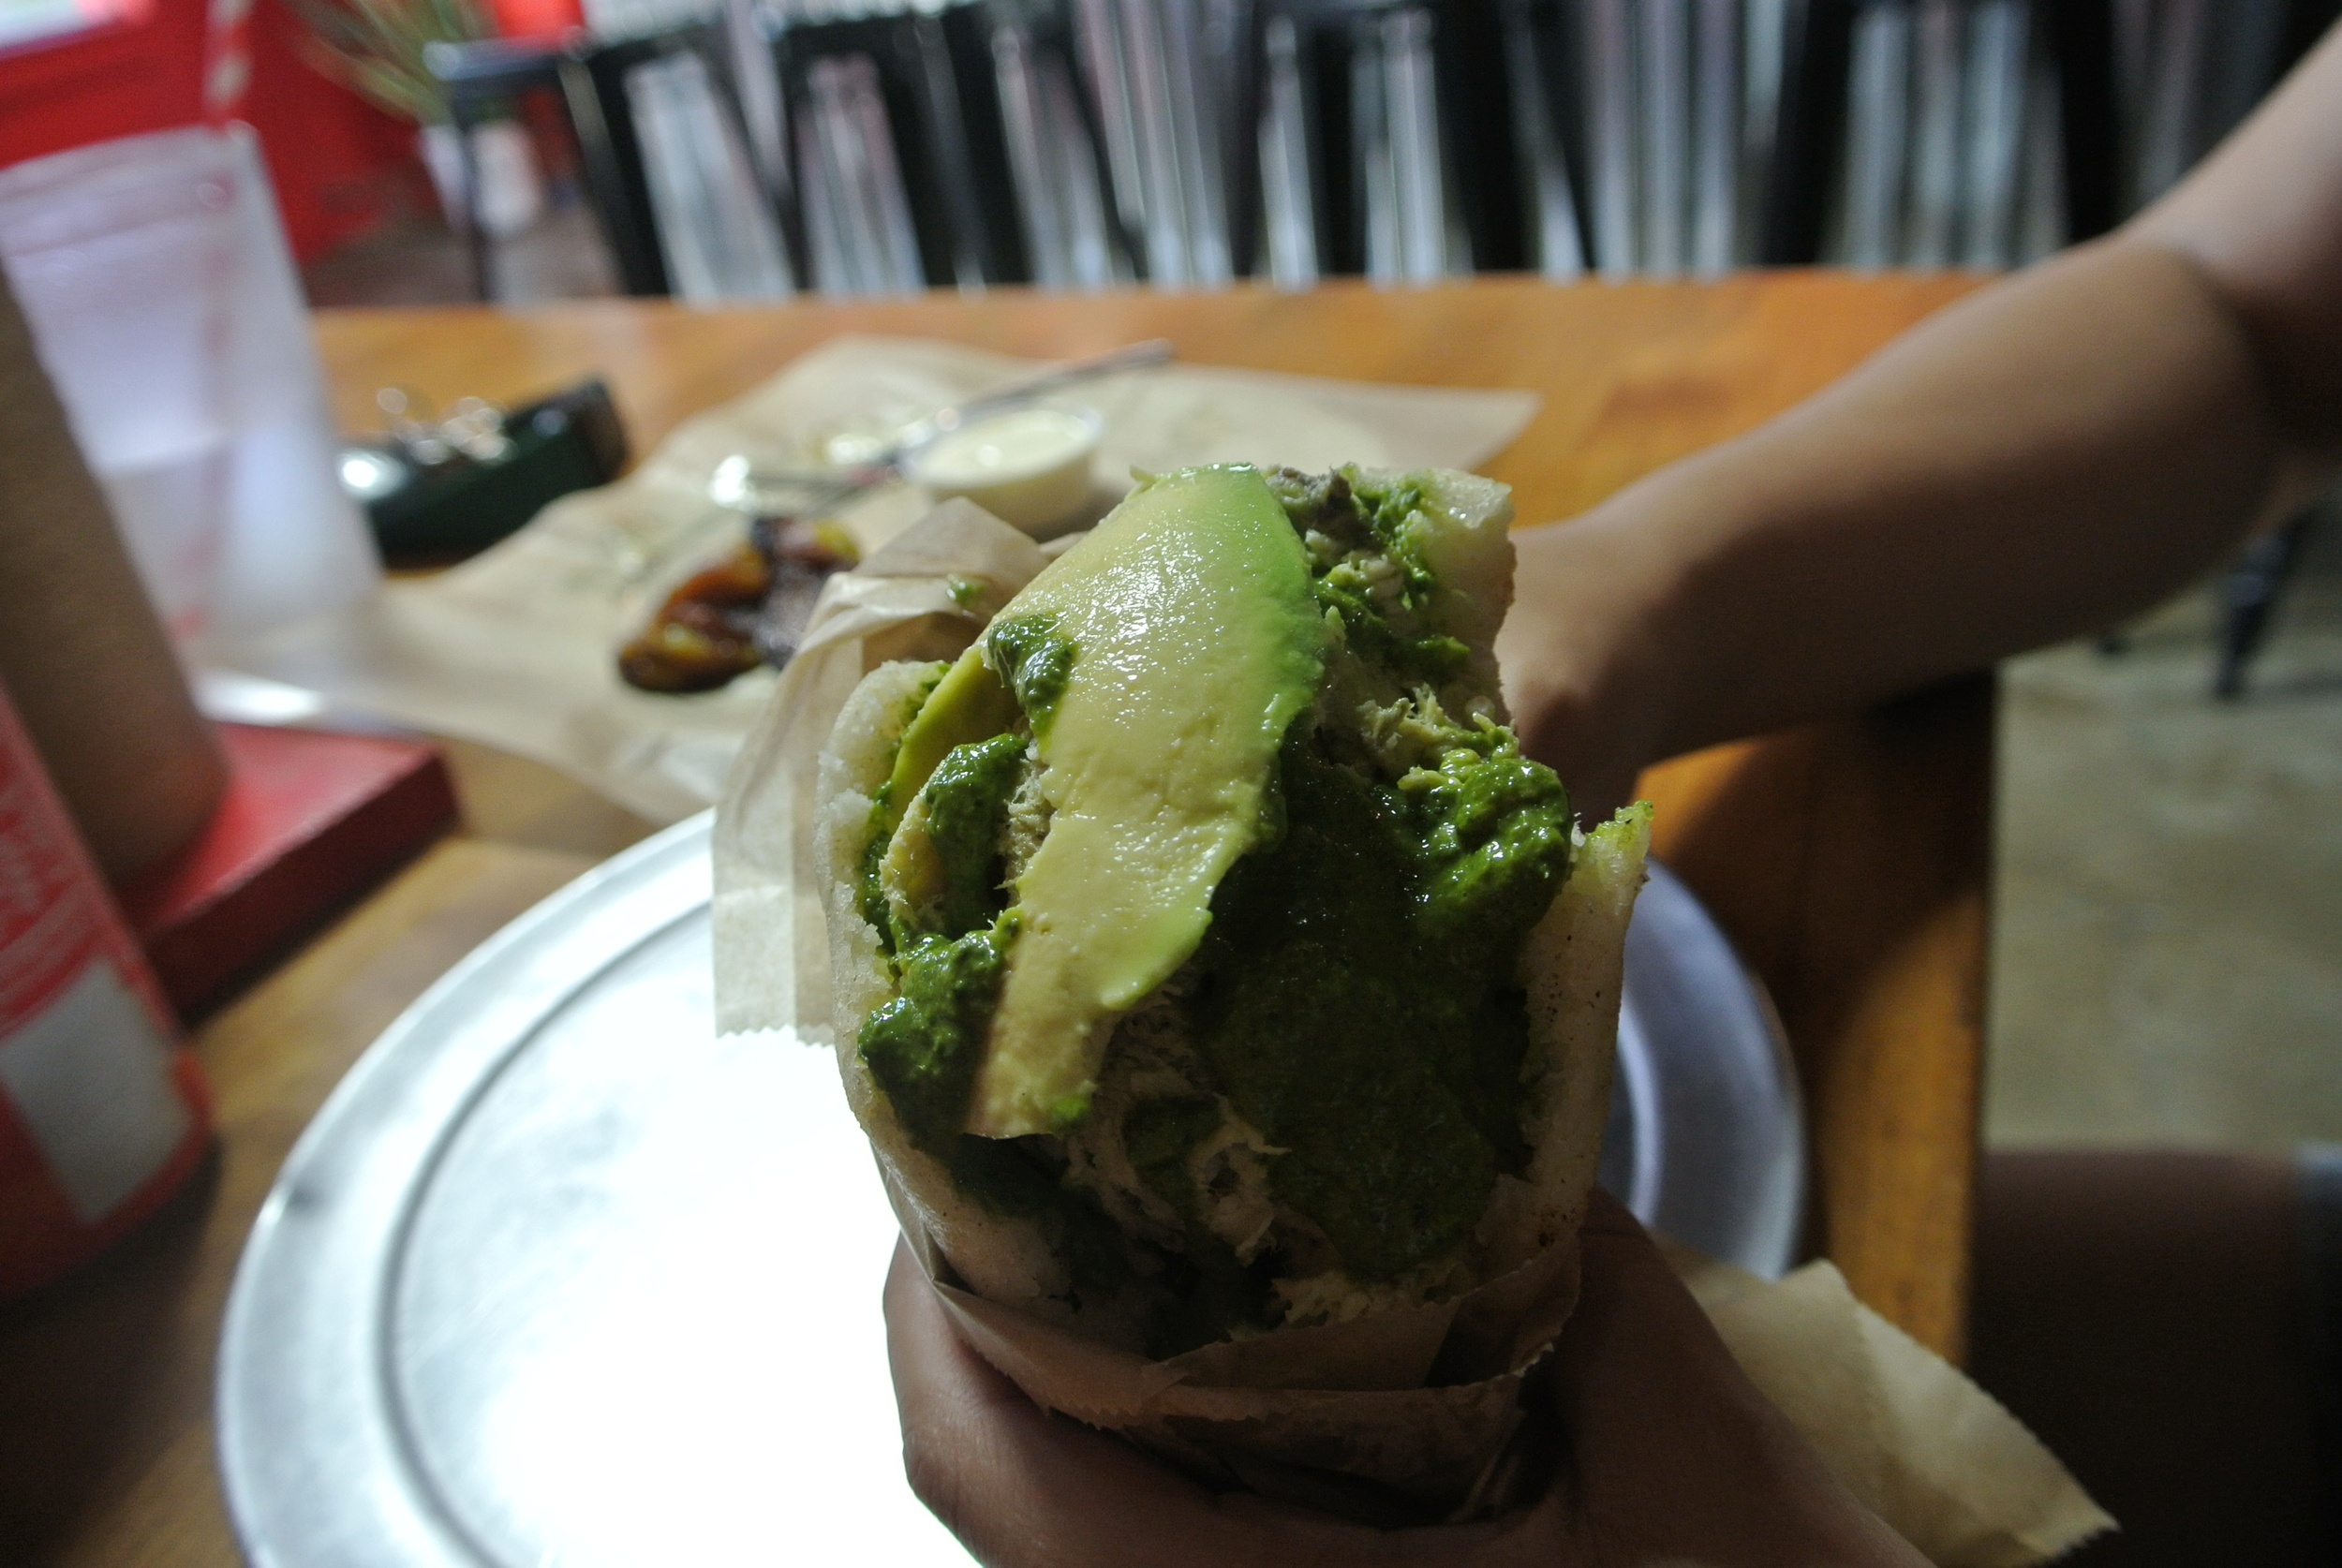 Reina pepiada (maybe): chicken with lime, cilantro, and avocado